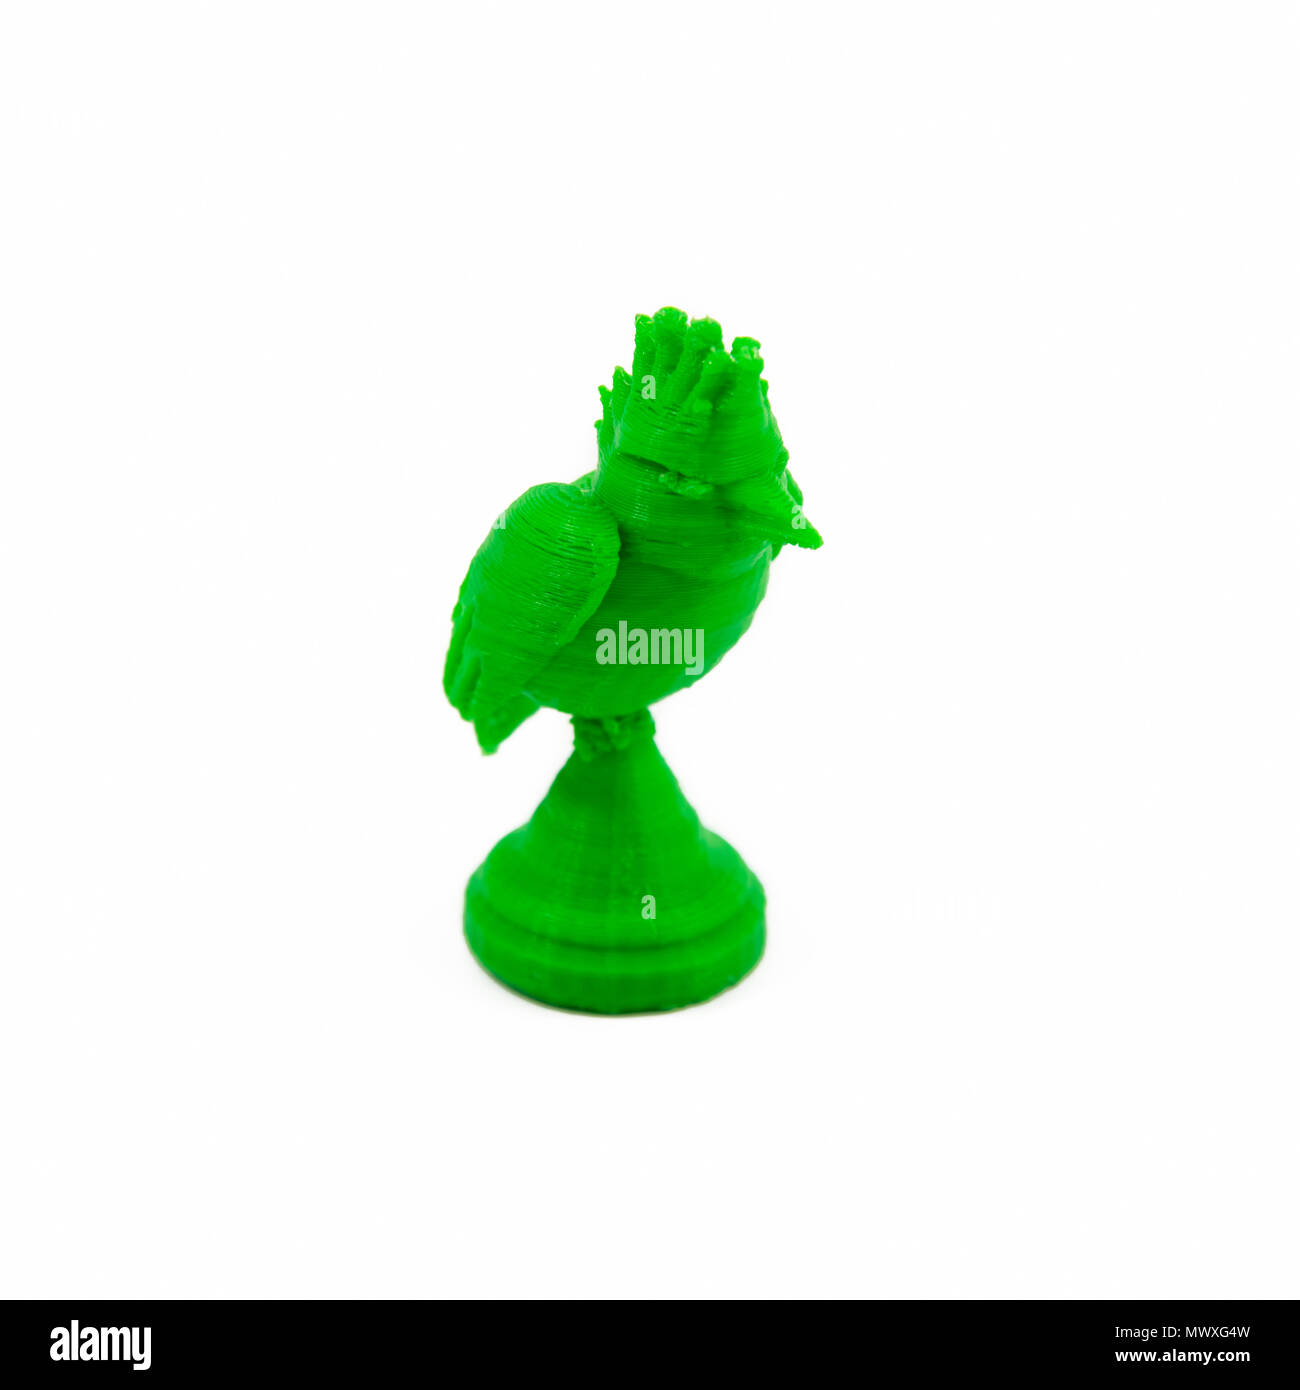 3D Printed Model Of A Bird Isolated On White Background - Stock Image